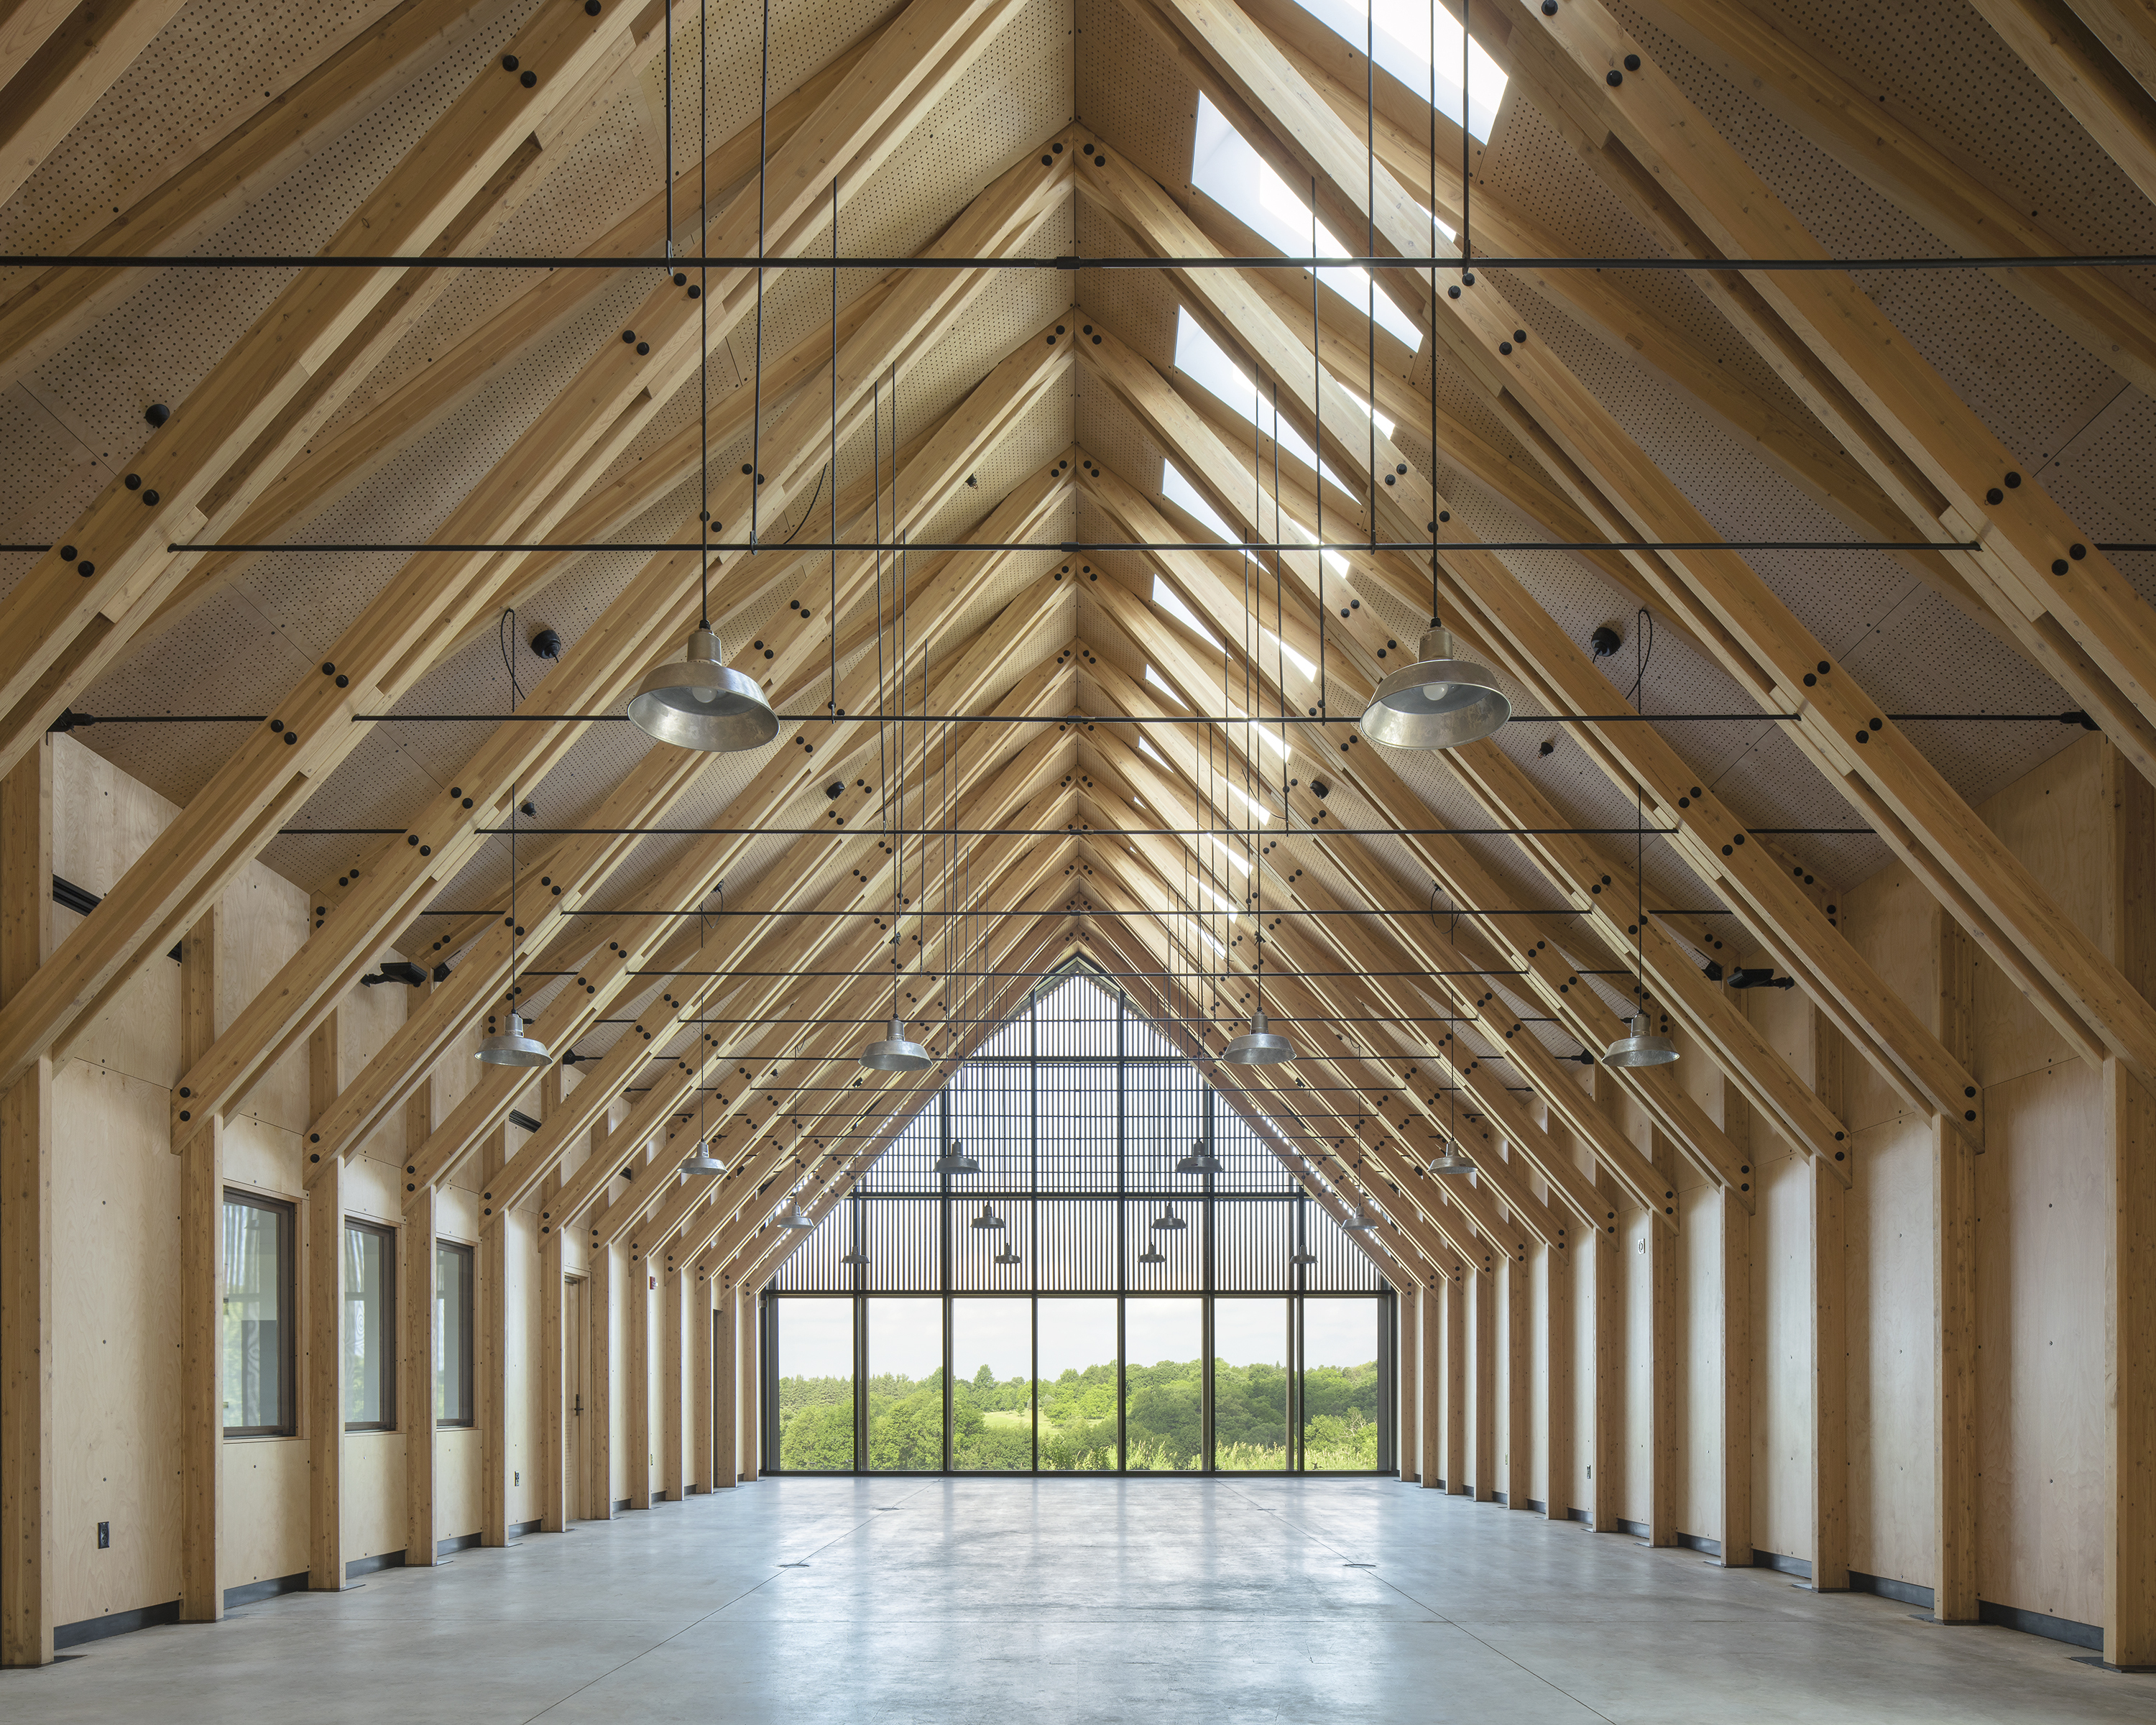 Wood Architecture: WoodWorks Announces 2017 Wood Design Award Winners